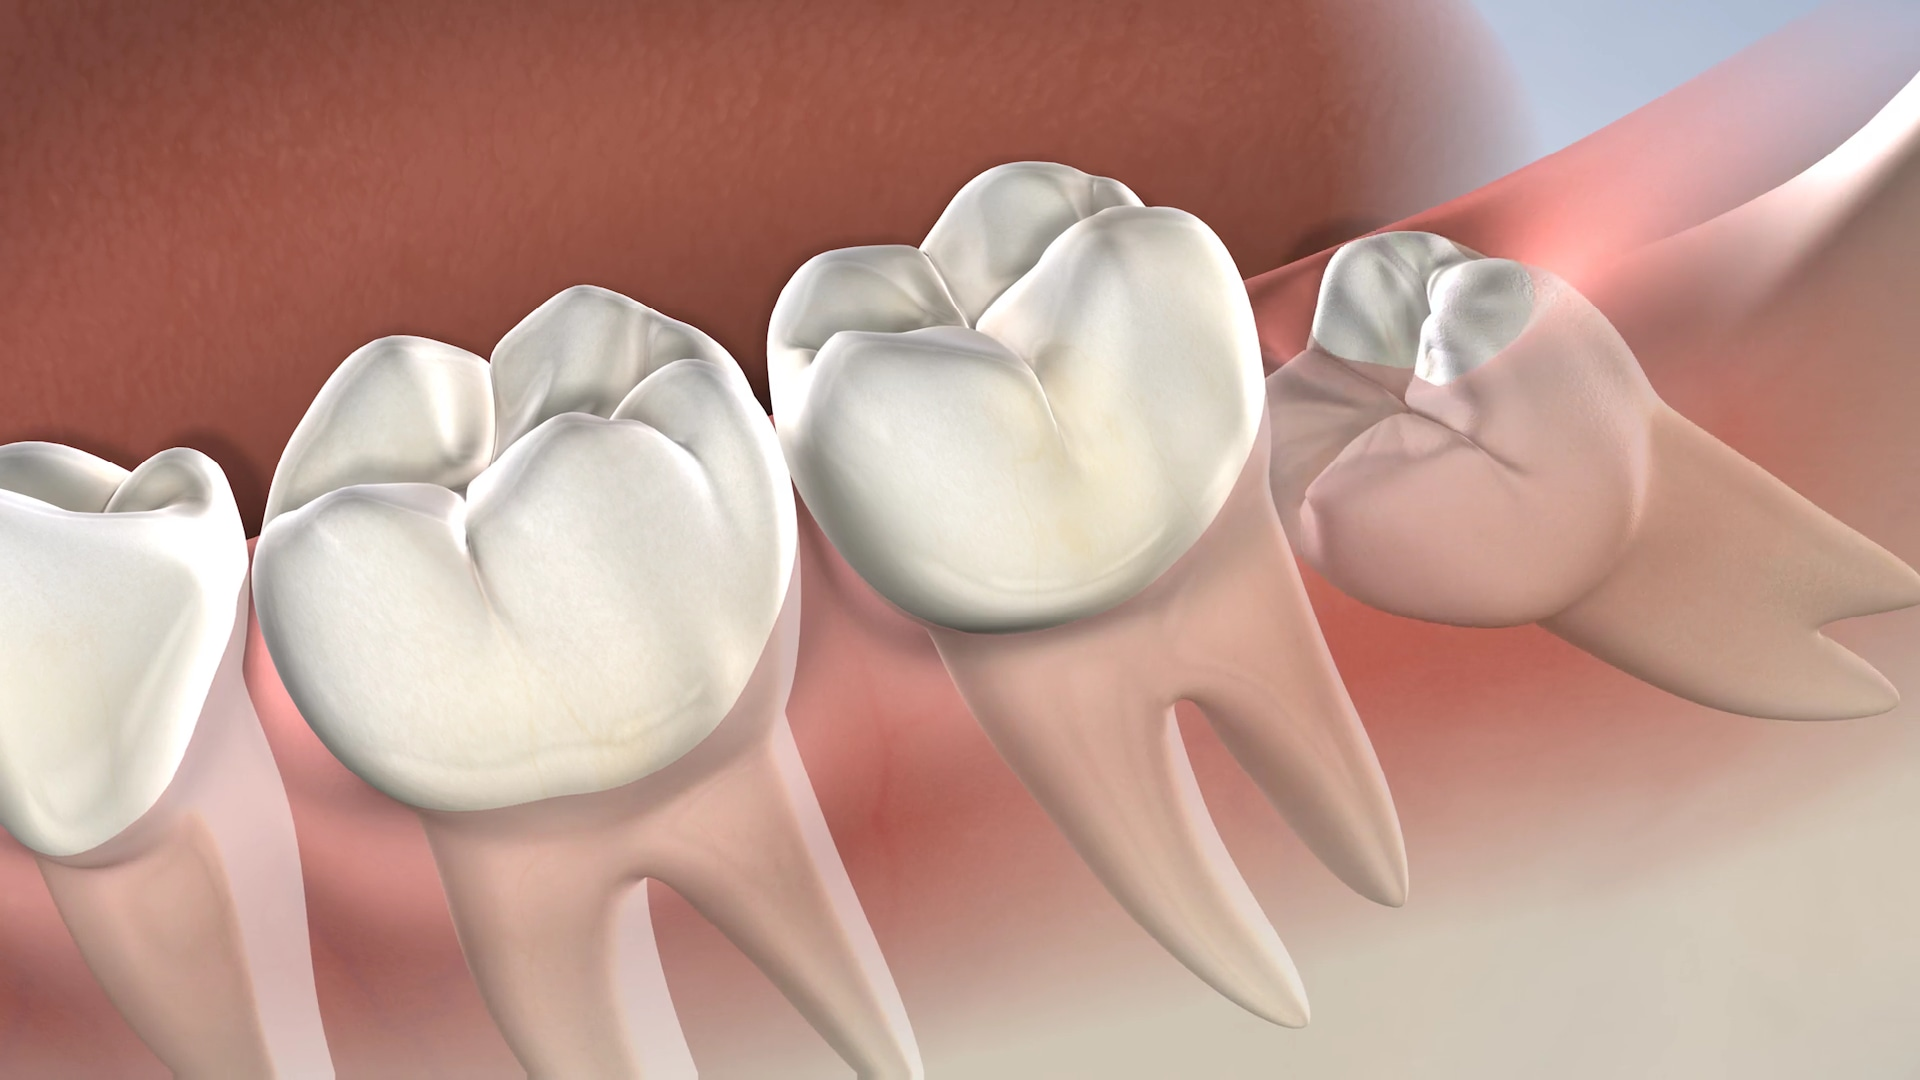 Post Operative Instructions Following Wisdom Tooth Extractions At Oral Surgery Specialists Of Oklahoma